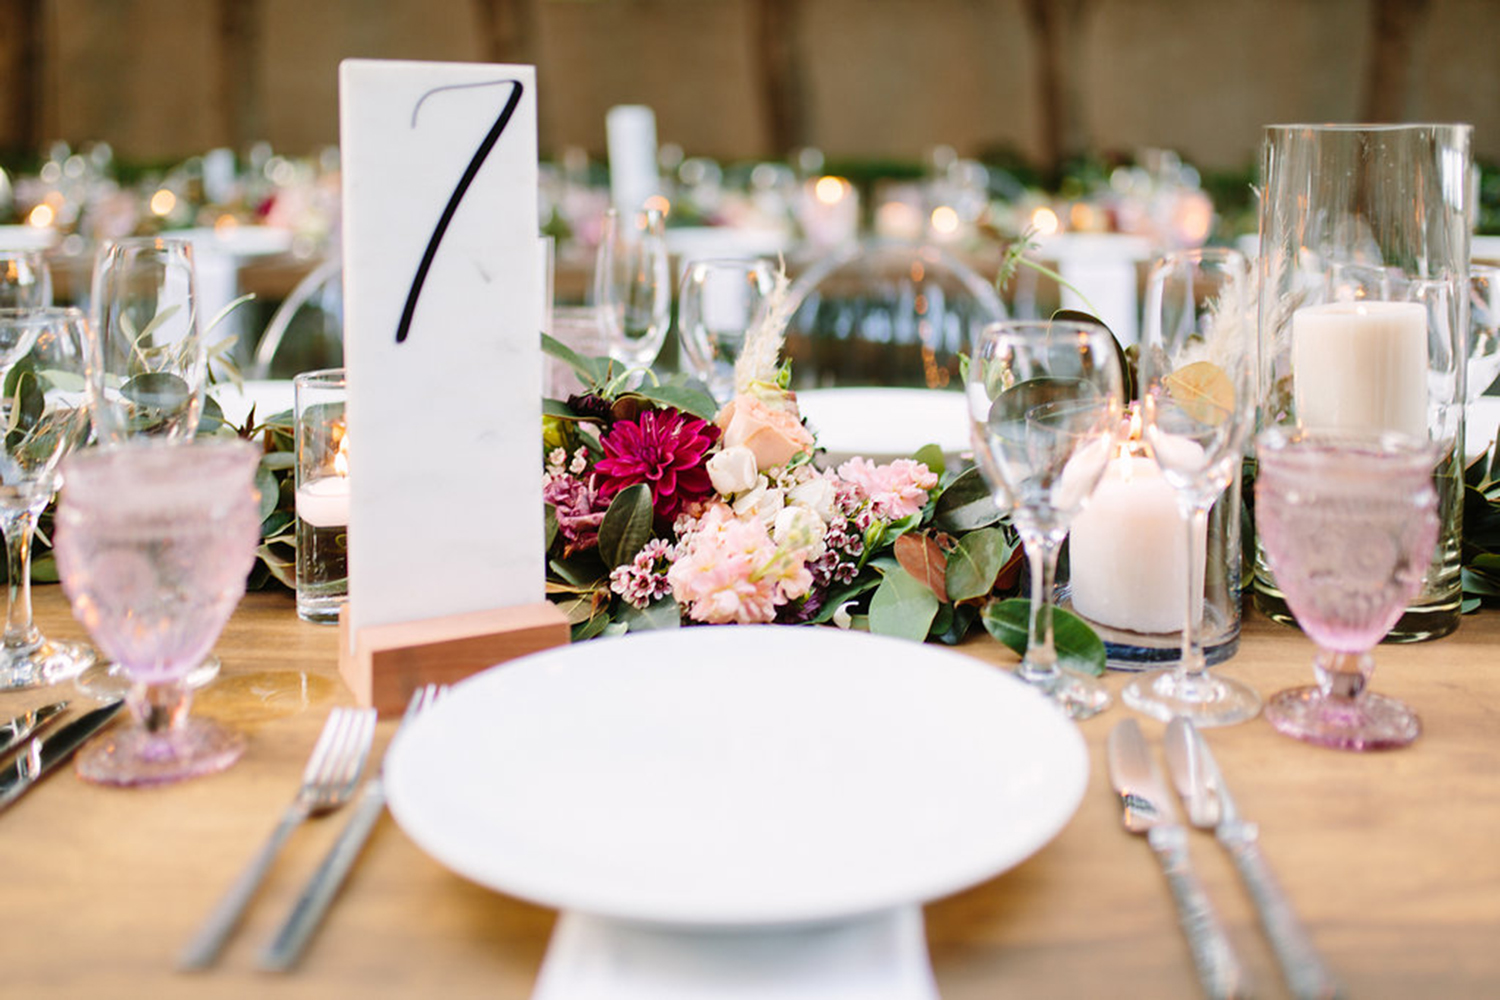 Marble table number at wedding